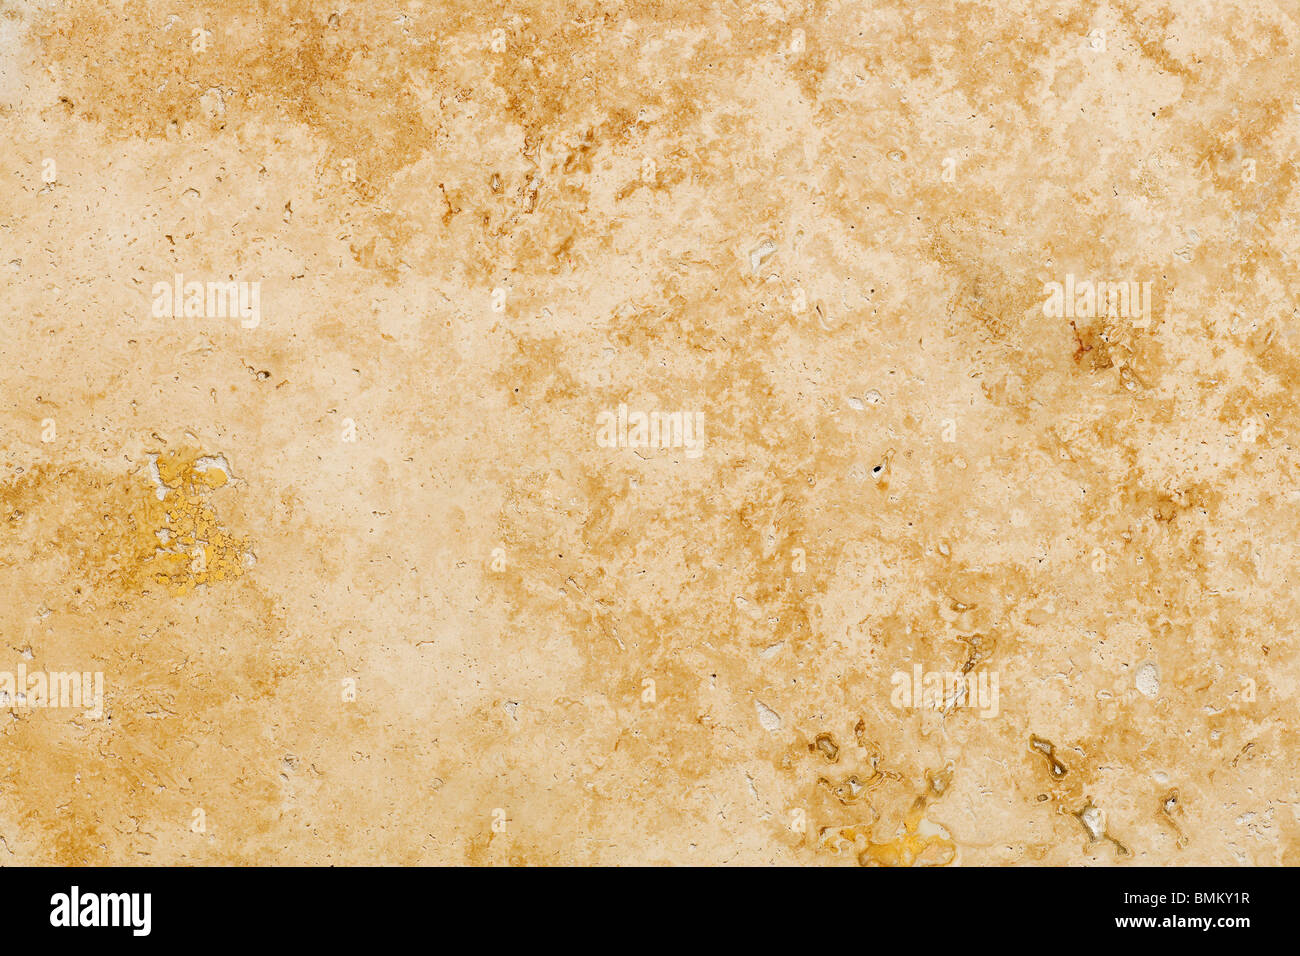 Travertine Stone Floor Tile Abstract Background Closeup - Stock Image